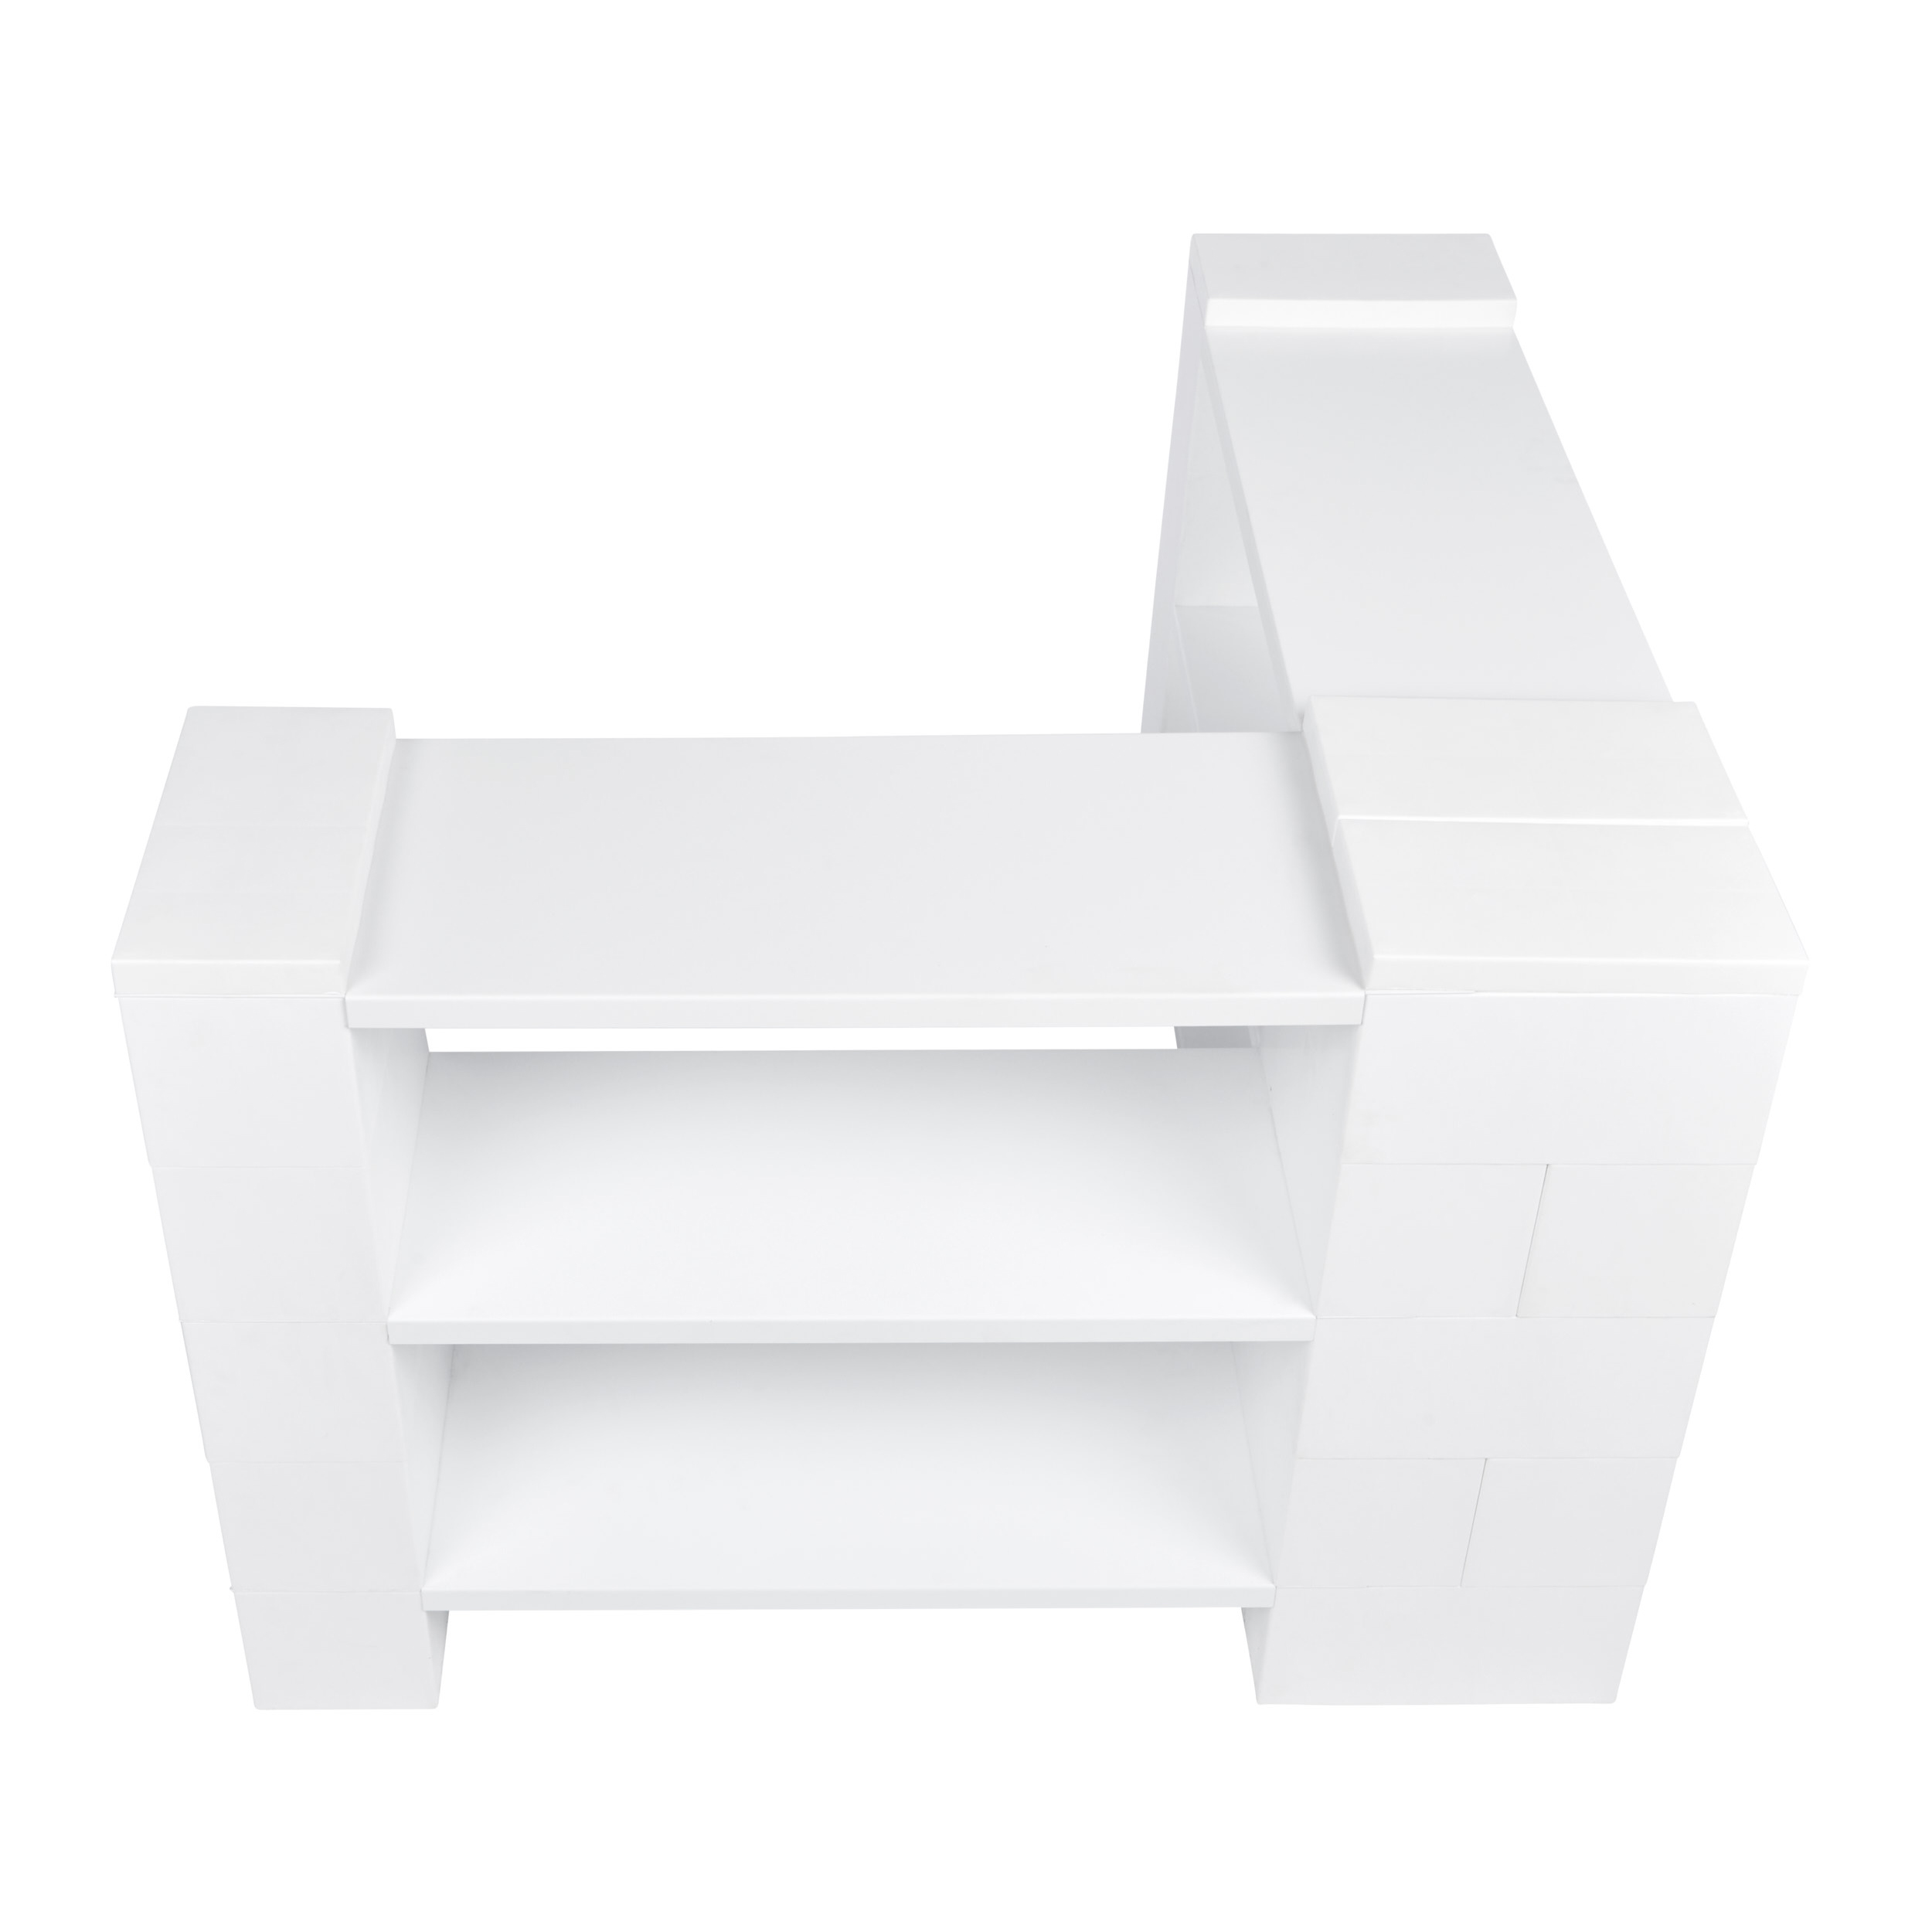 3 Level Corner Shelving Kit B